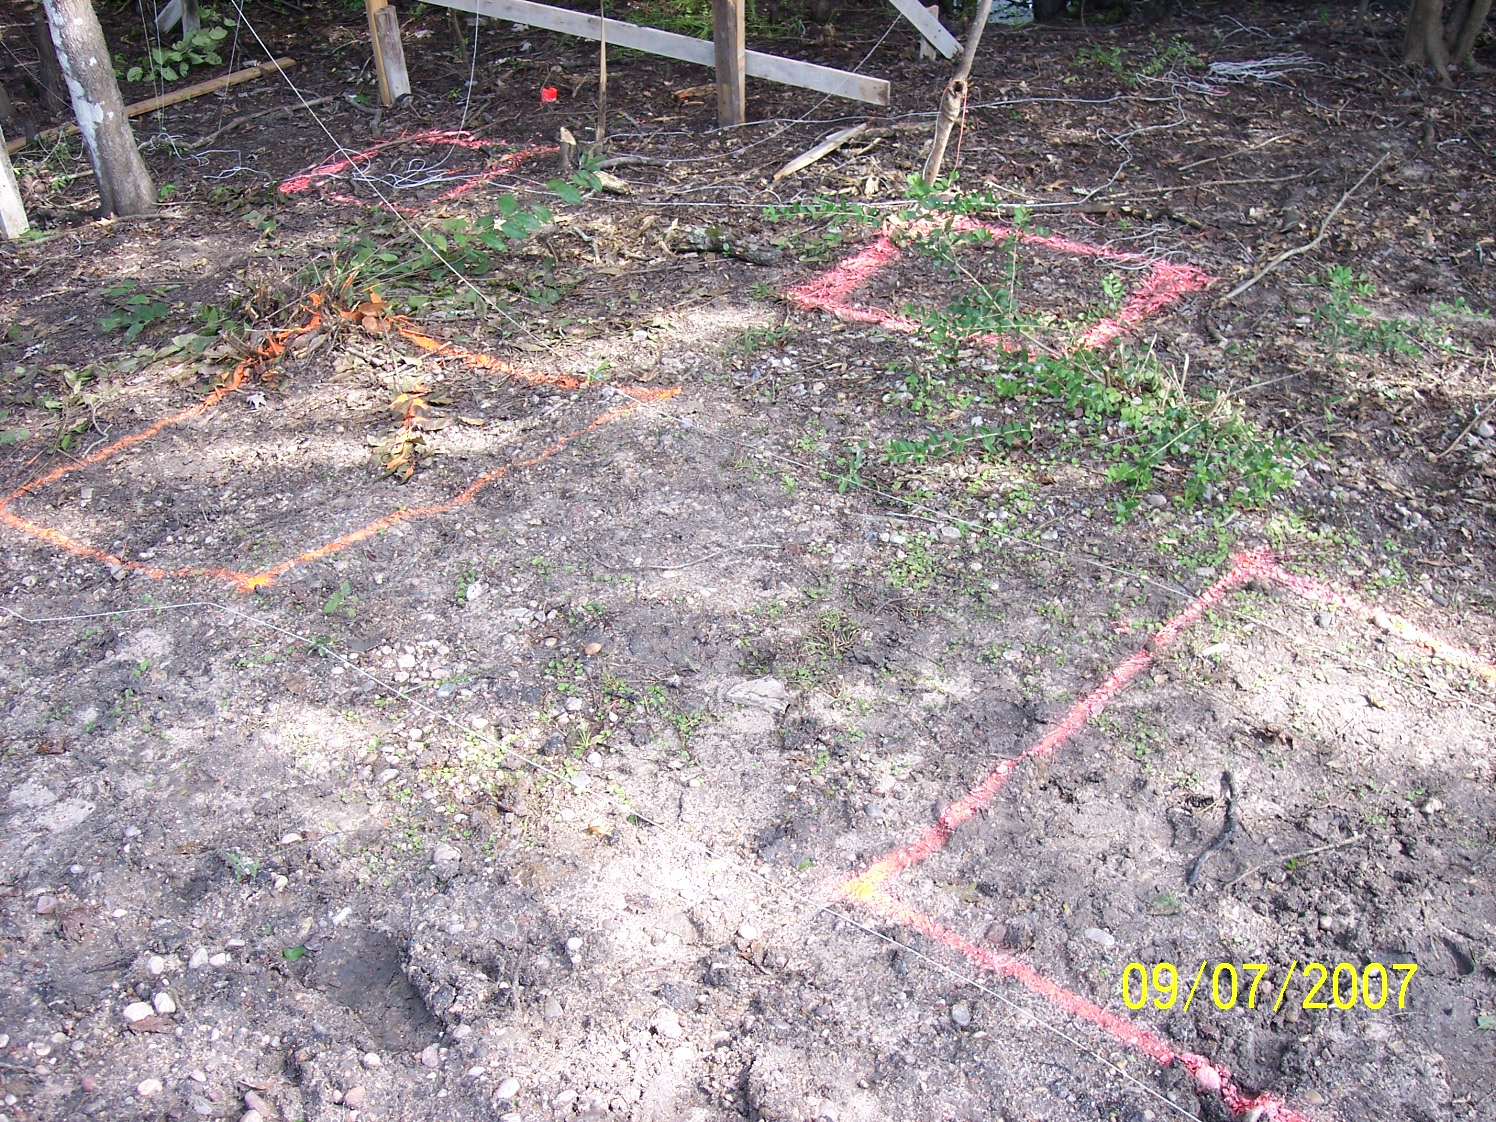 Footings & water seepage